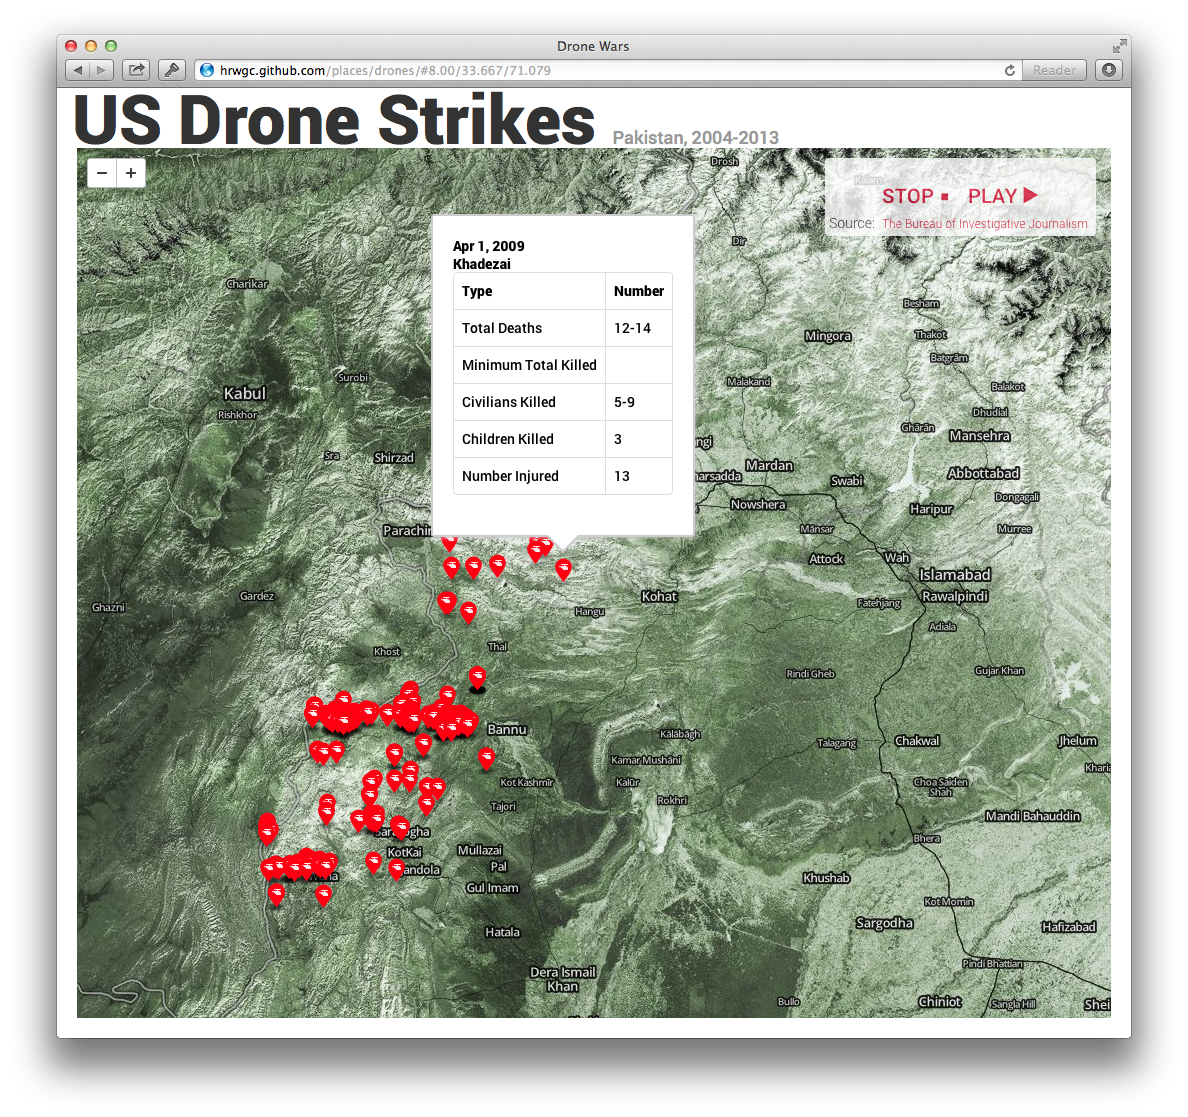 "How to Create a Live Feed of U.S. Drone Strikes with MapBox Last Thursday the United Nations opened an inquiry into the ""civilian impact of the use of drones and other forms of targeted killing."" Data - data about casualties, targets, frequency, and other topics - will play an important role in this investigation, led by the UN special rapporteur for human rights and counterterrorism. Visualization can add important context to help the public follow this inquiry. Adding markers dynamically can be a serious game-changer for visualizations using time-sensitive data, and something that you can do with MapBox."""